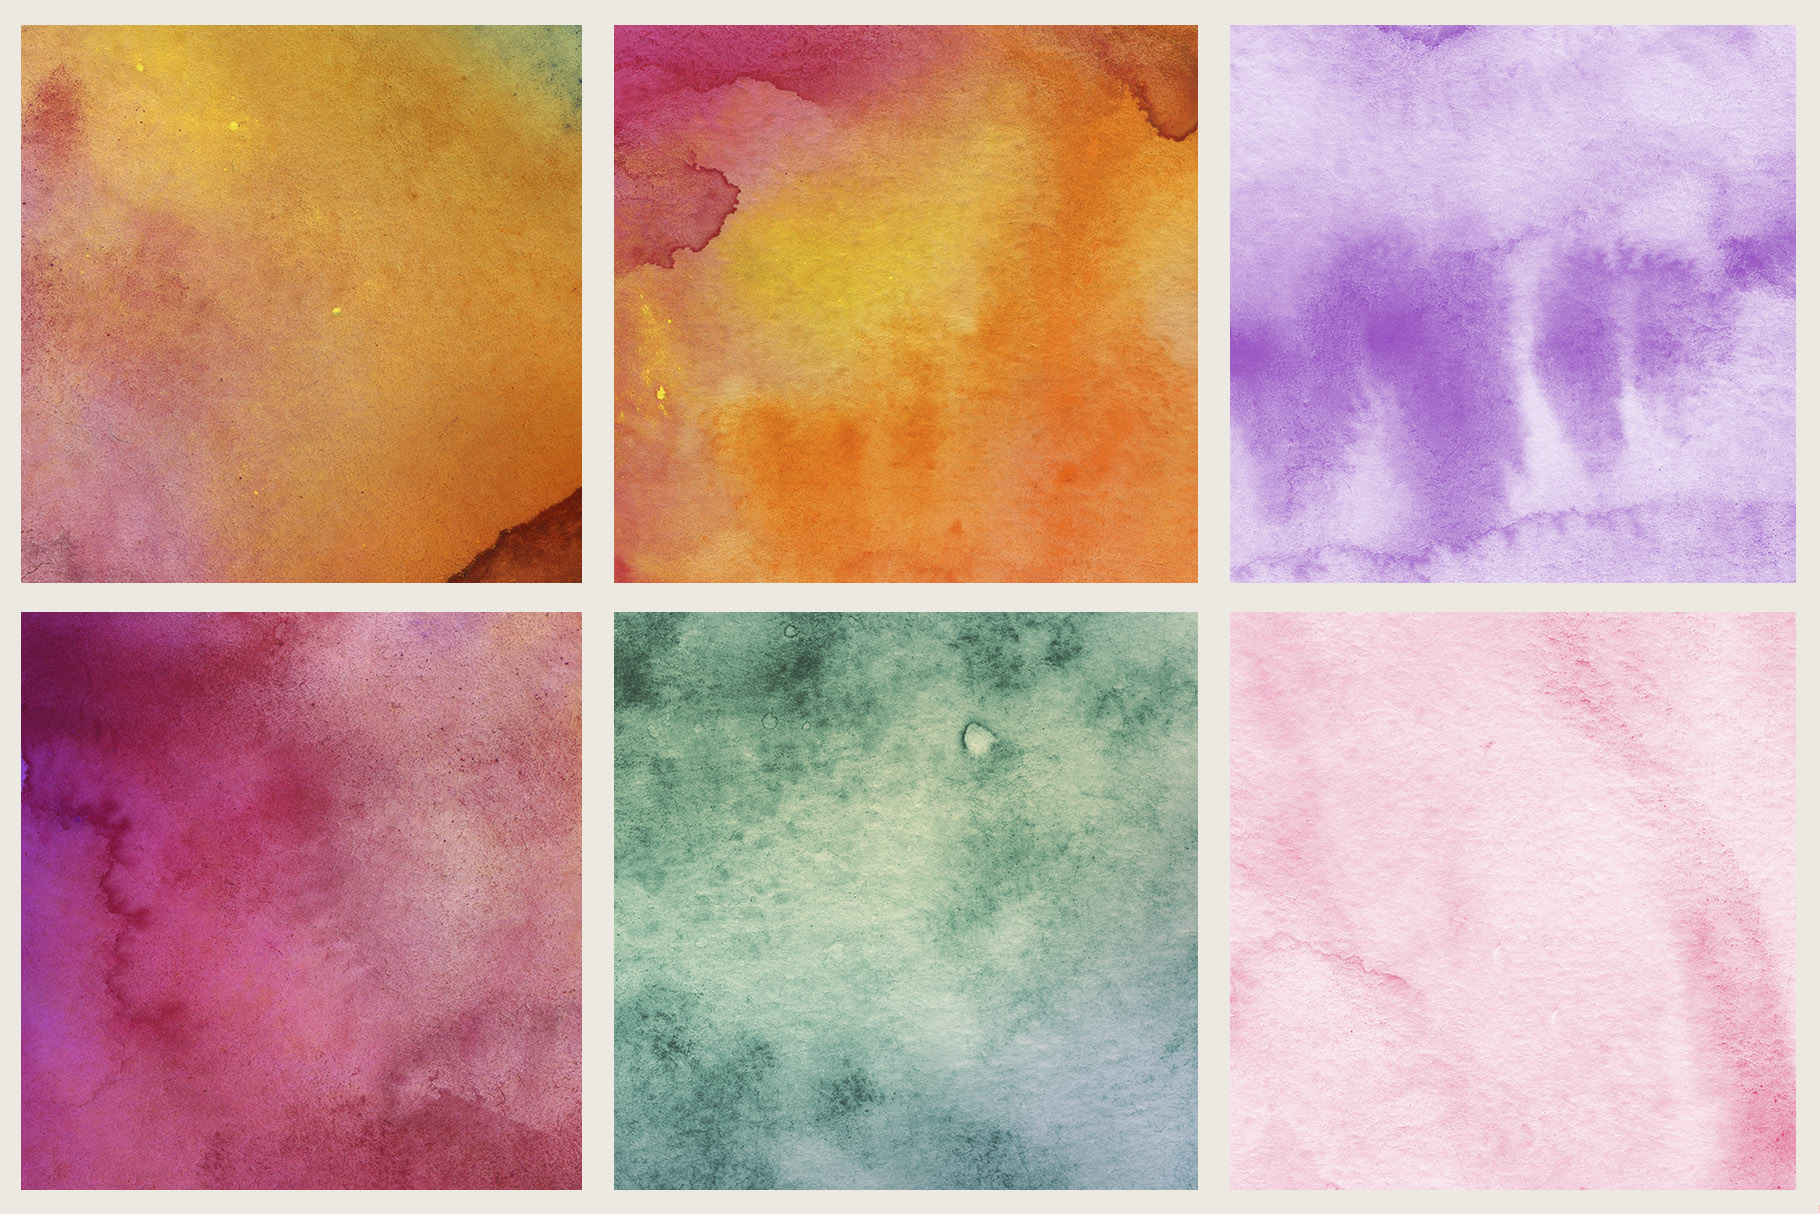 Luminoso Watercolor Textures example image 3